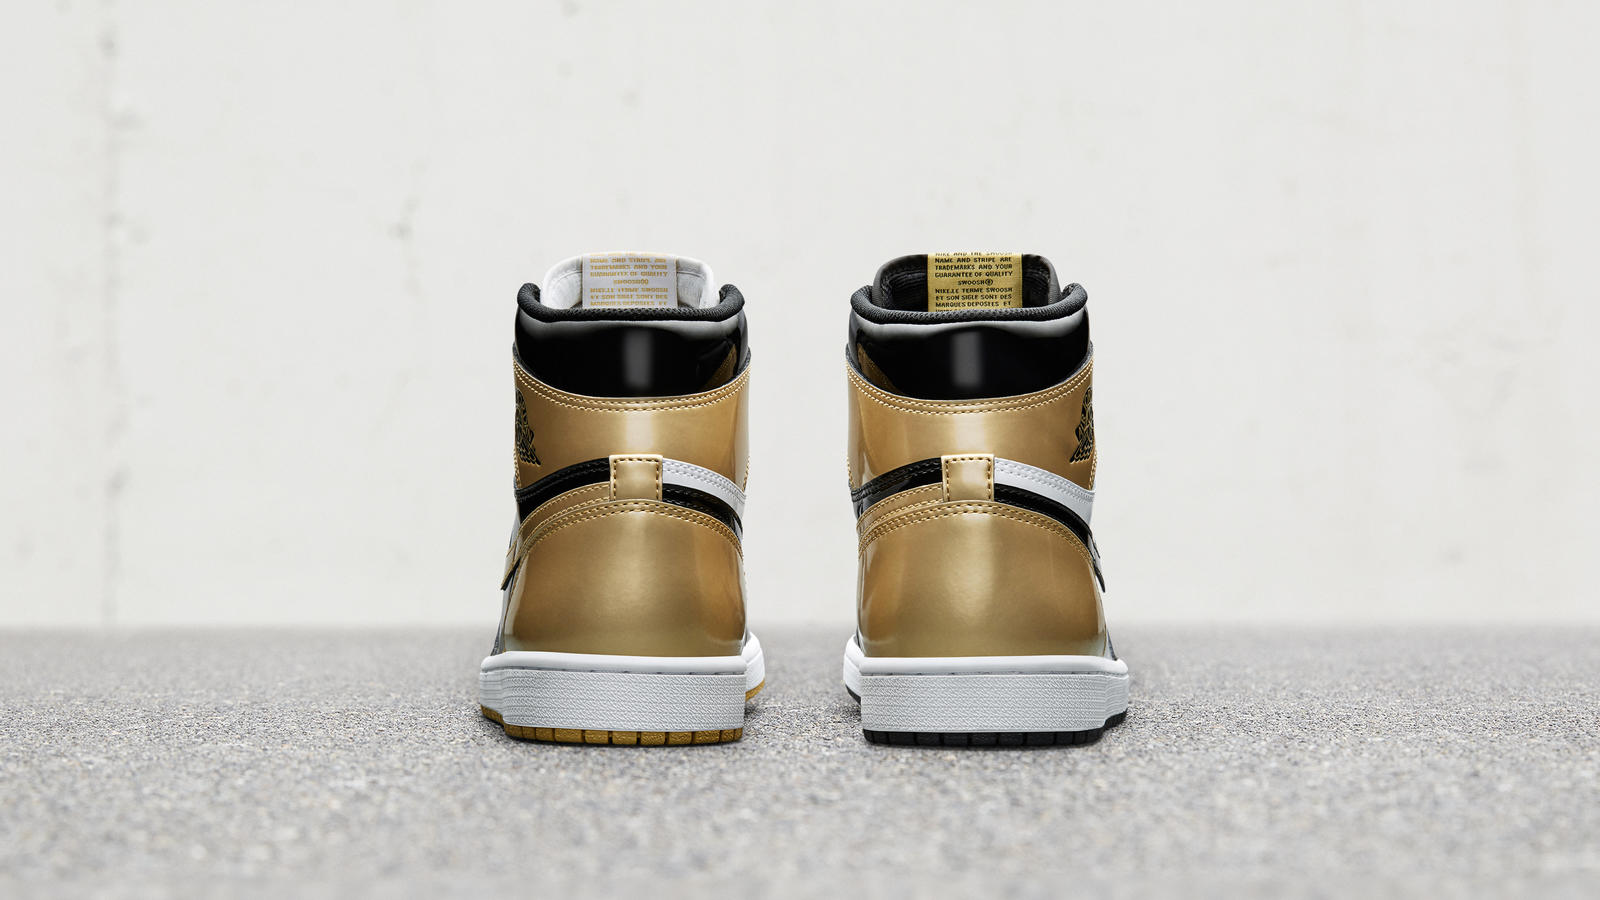 Gold jordan 1 top 3 02 hd 1600